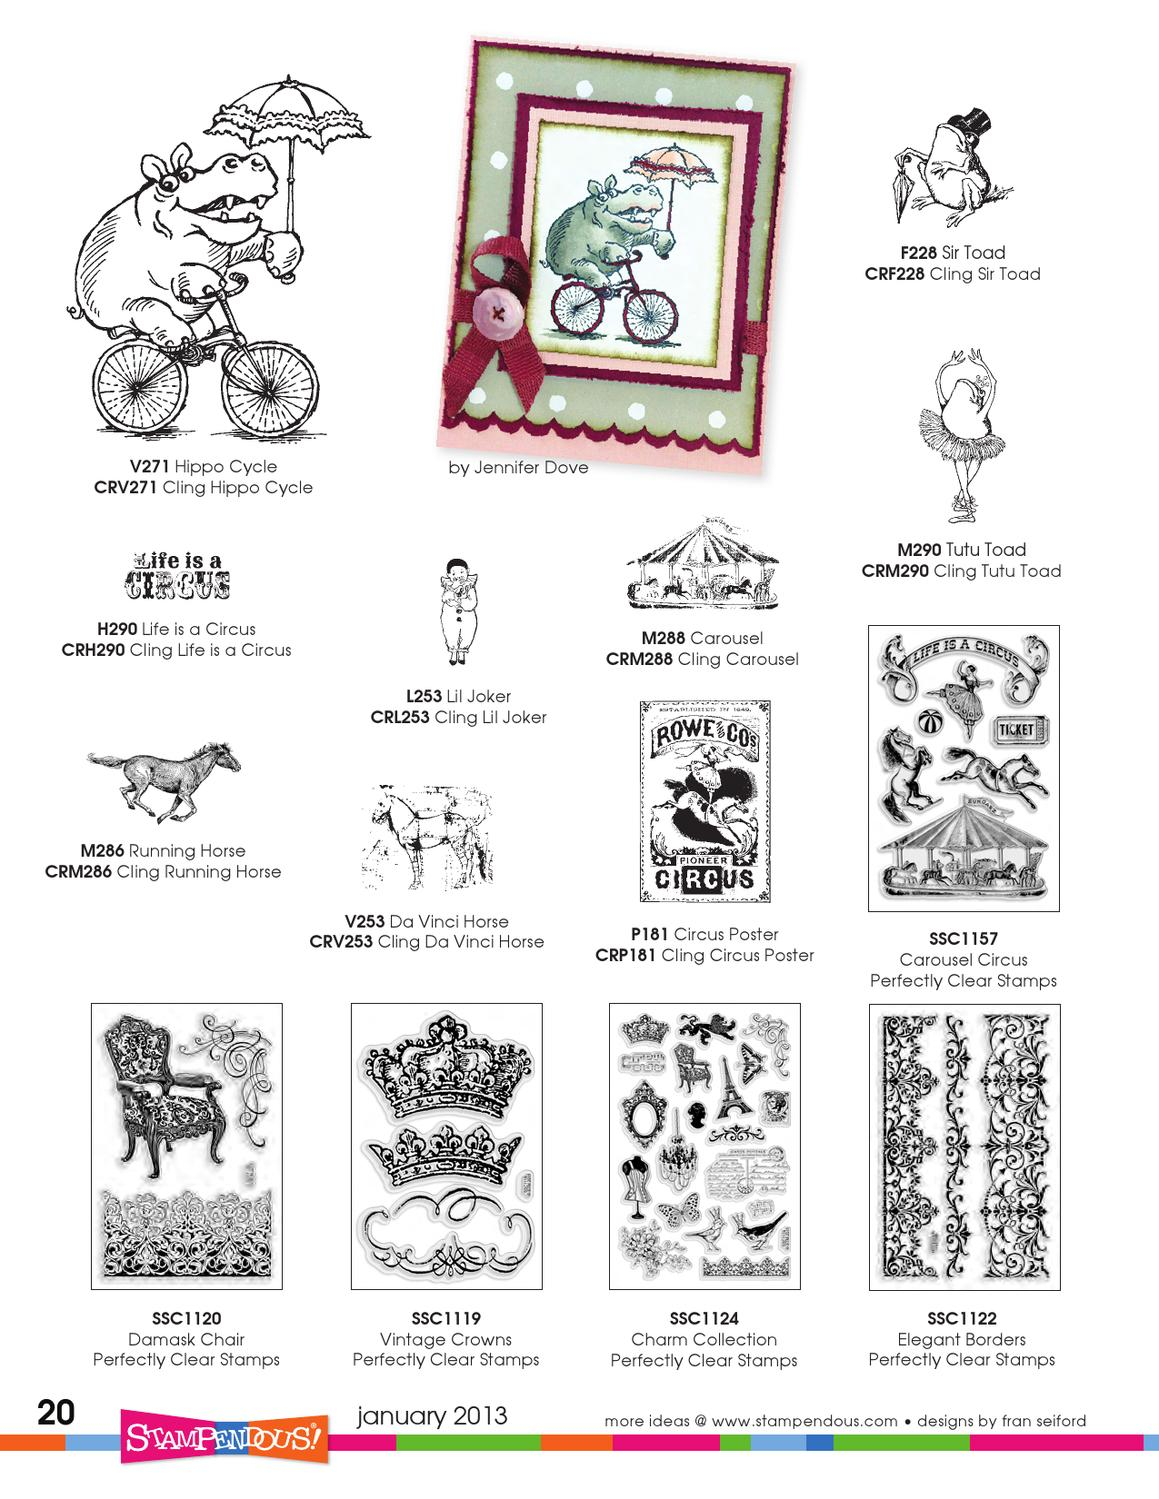 Lil Joker Image Stampendous Cling Rubber Stamp